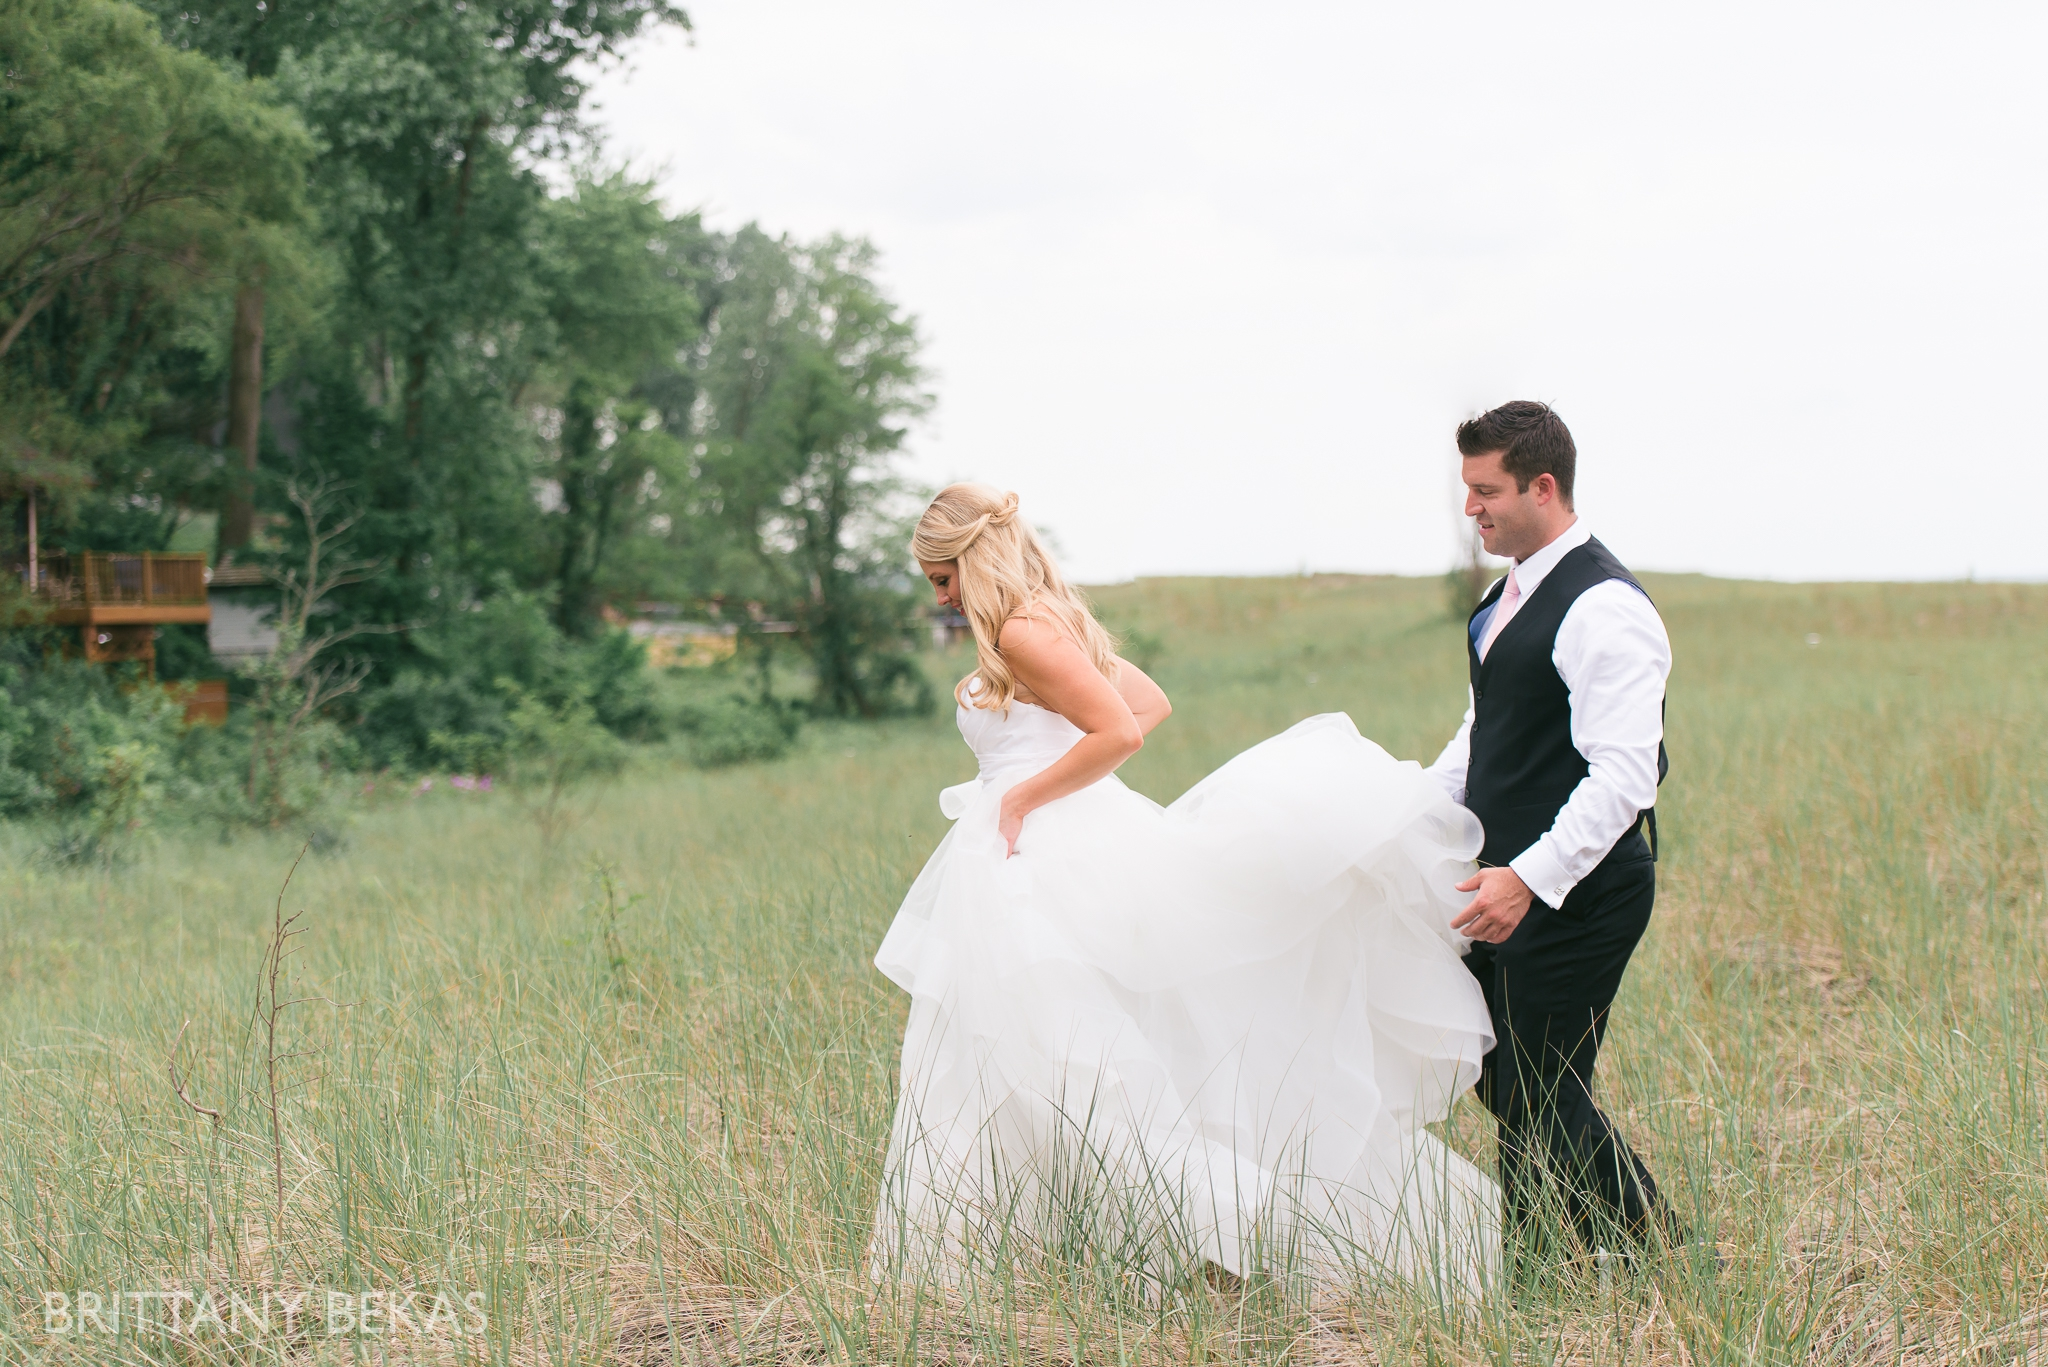 New Buffalo Wedding - Willow Harbor Vineyards Wedding Photos - Brittany Bekas Photography_0015